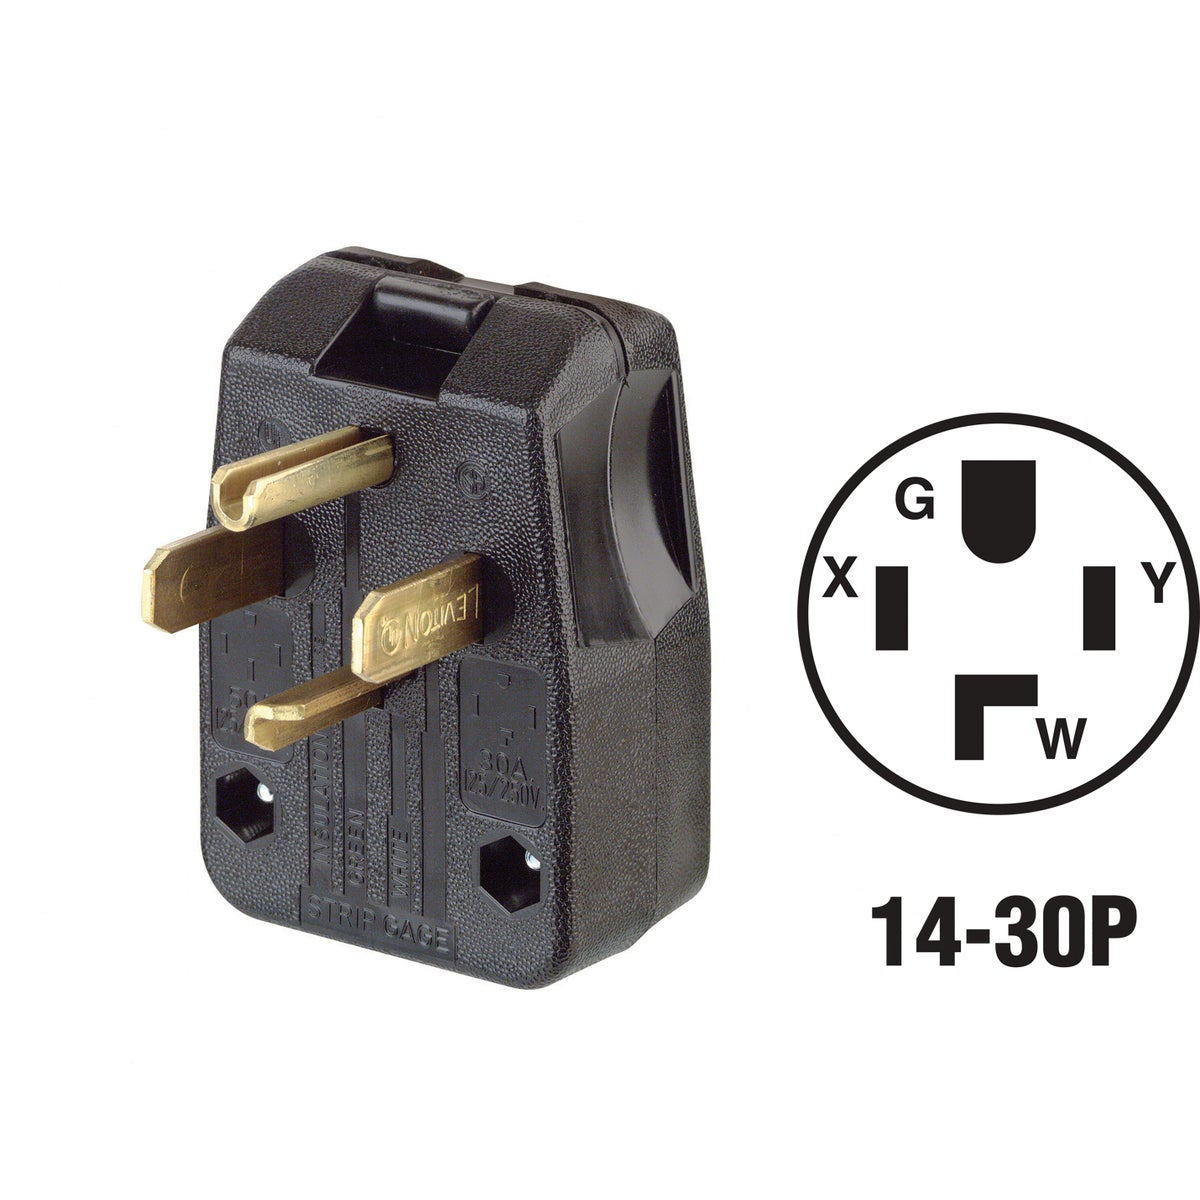 30/50A 4-WIRE PLUG - 200-00275-00T by Leviton Mfg Co